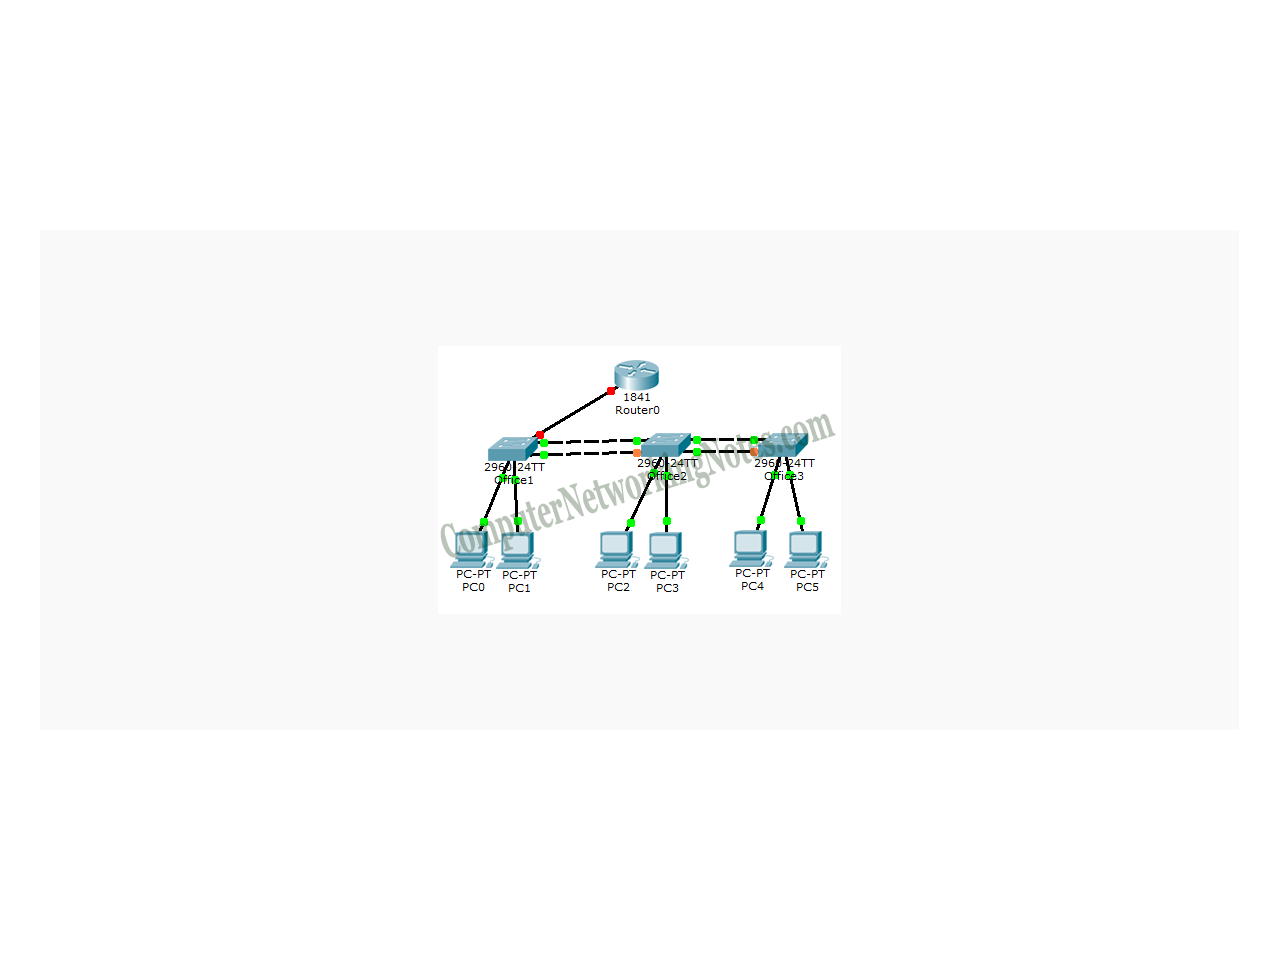 VLAN Practice Lab Setup in Packet Tracer